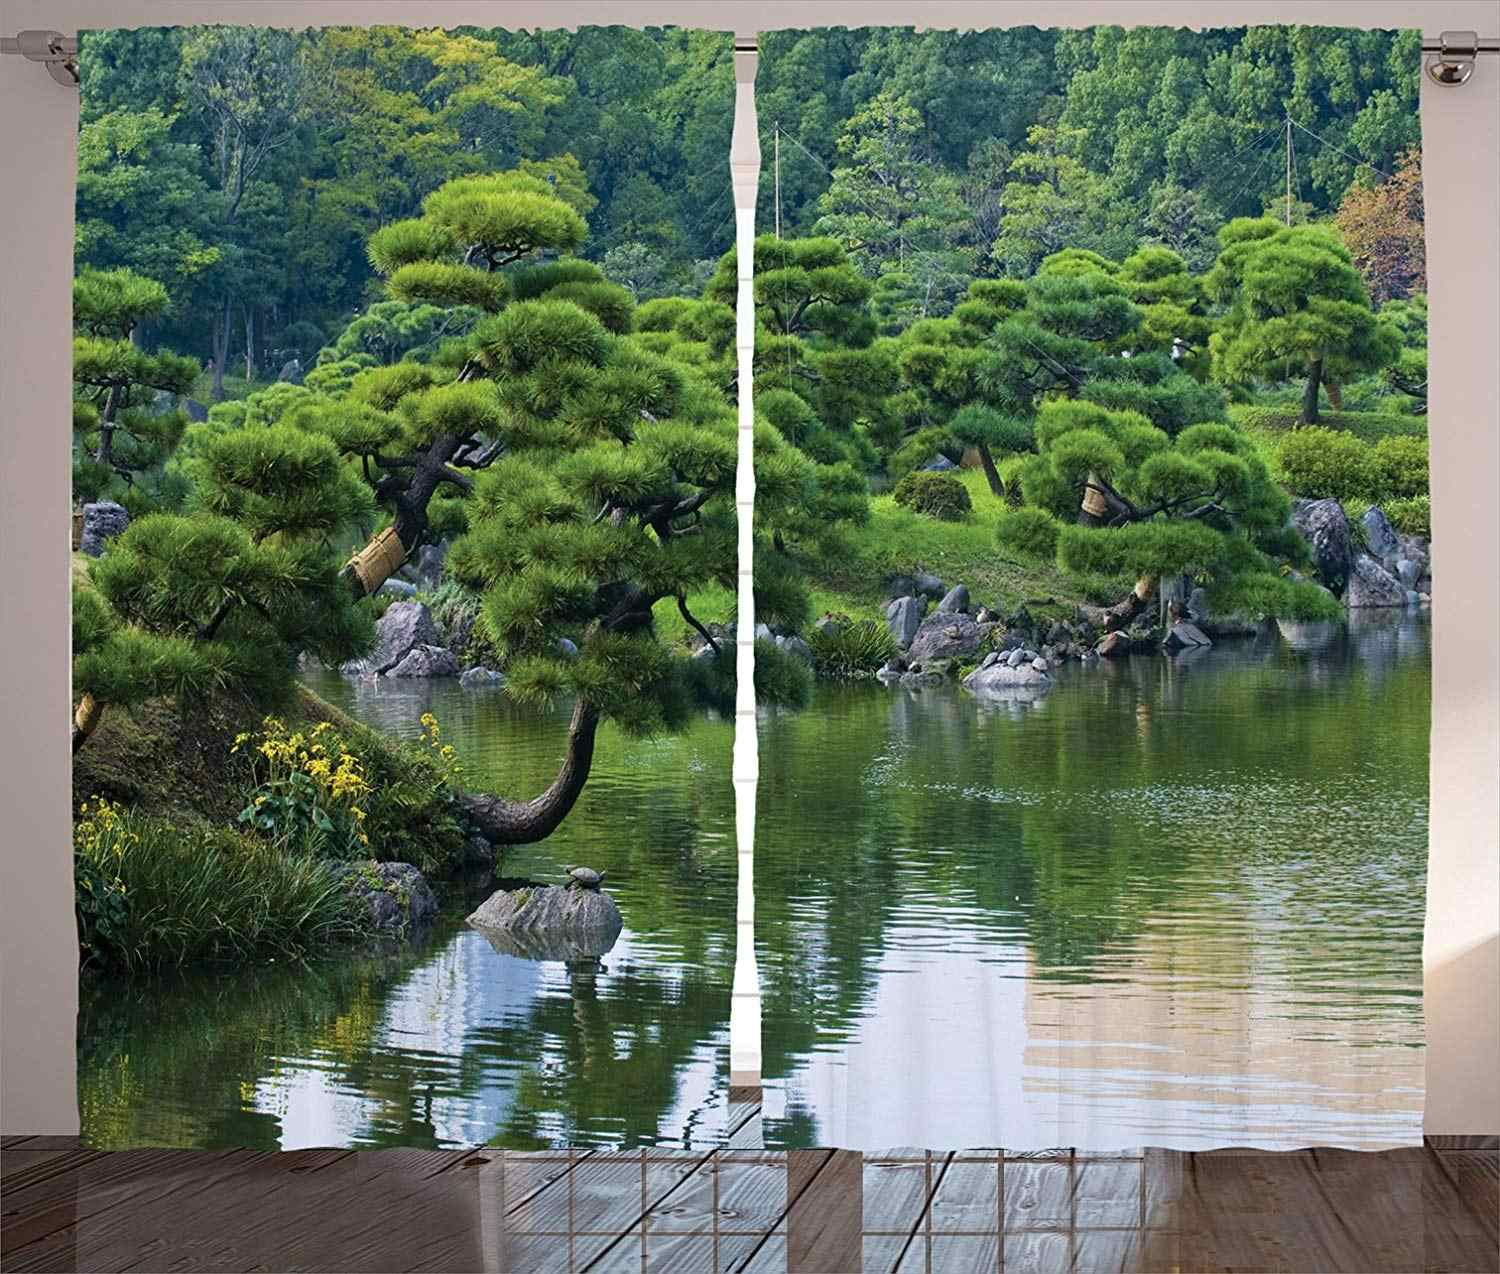 Japanese Decor Curtains River Landscape with Trees Flowers Stones Silence in Asian Natural Beauty Garden Theme Photo Living Room